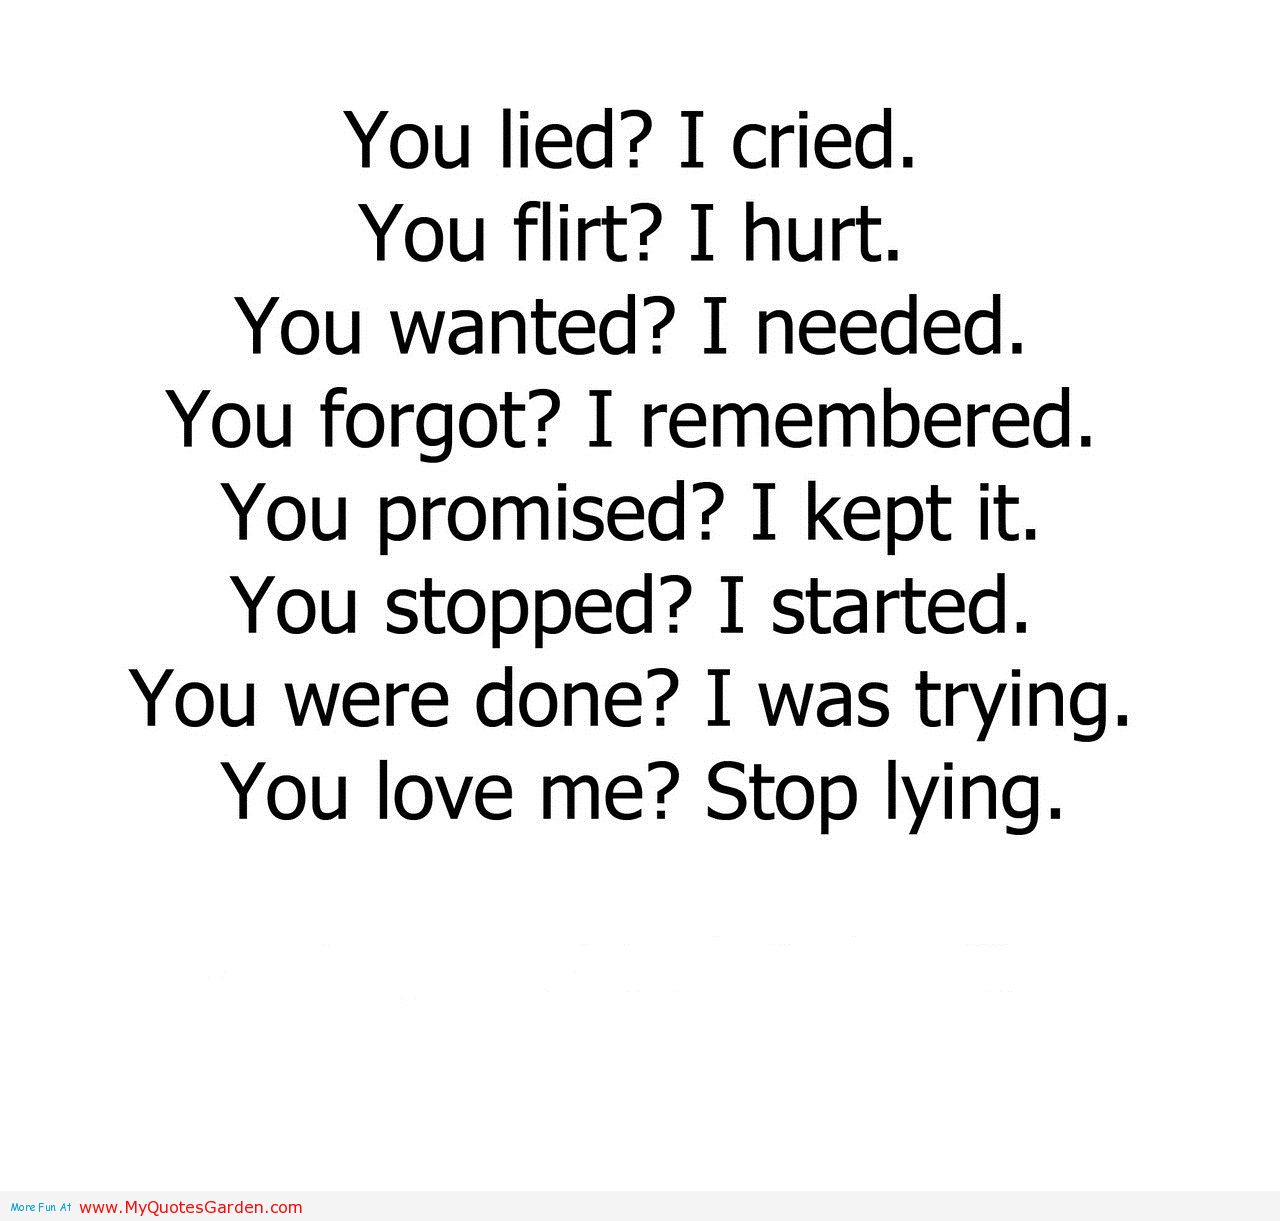 Image of: Positive Quotes Lovethispiccom Helpful Non Helpful You Lied Cried You Flirt Hurt You Wanted Quote Master Quotes About Relationship Lies 81 Quotes